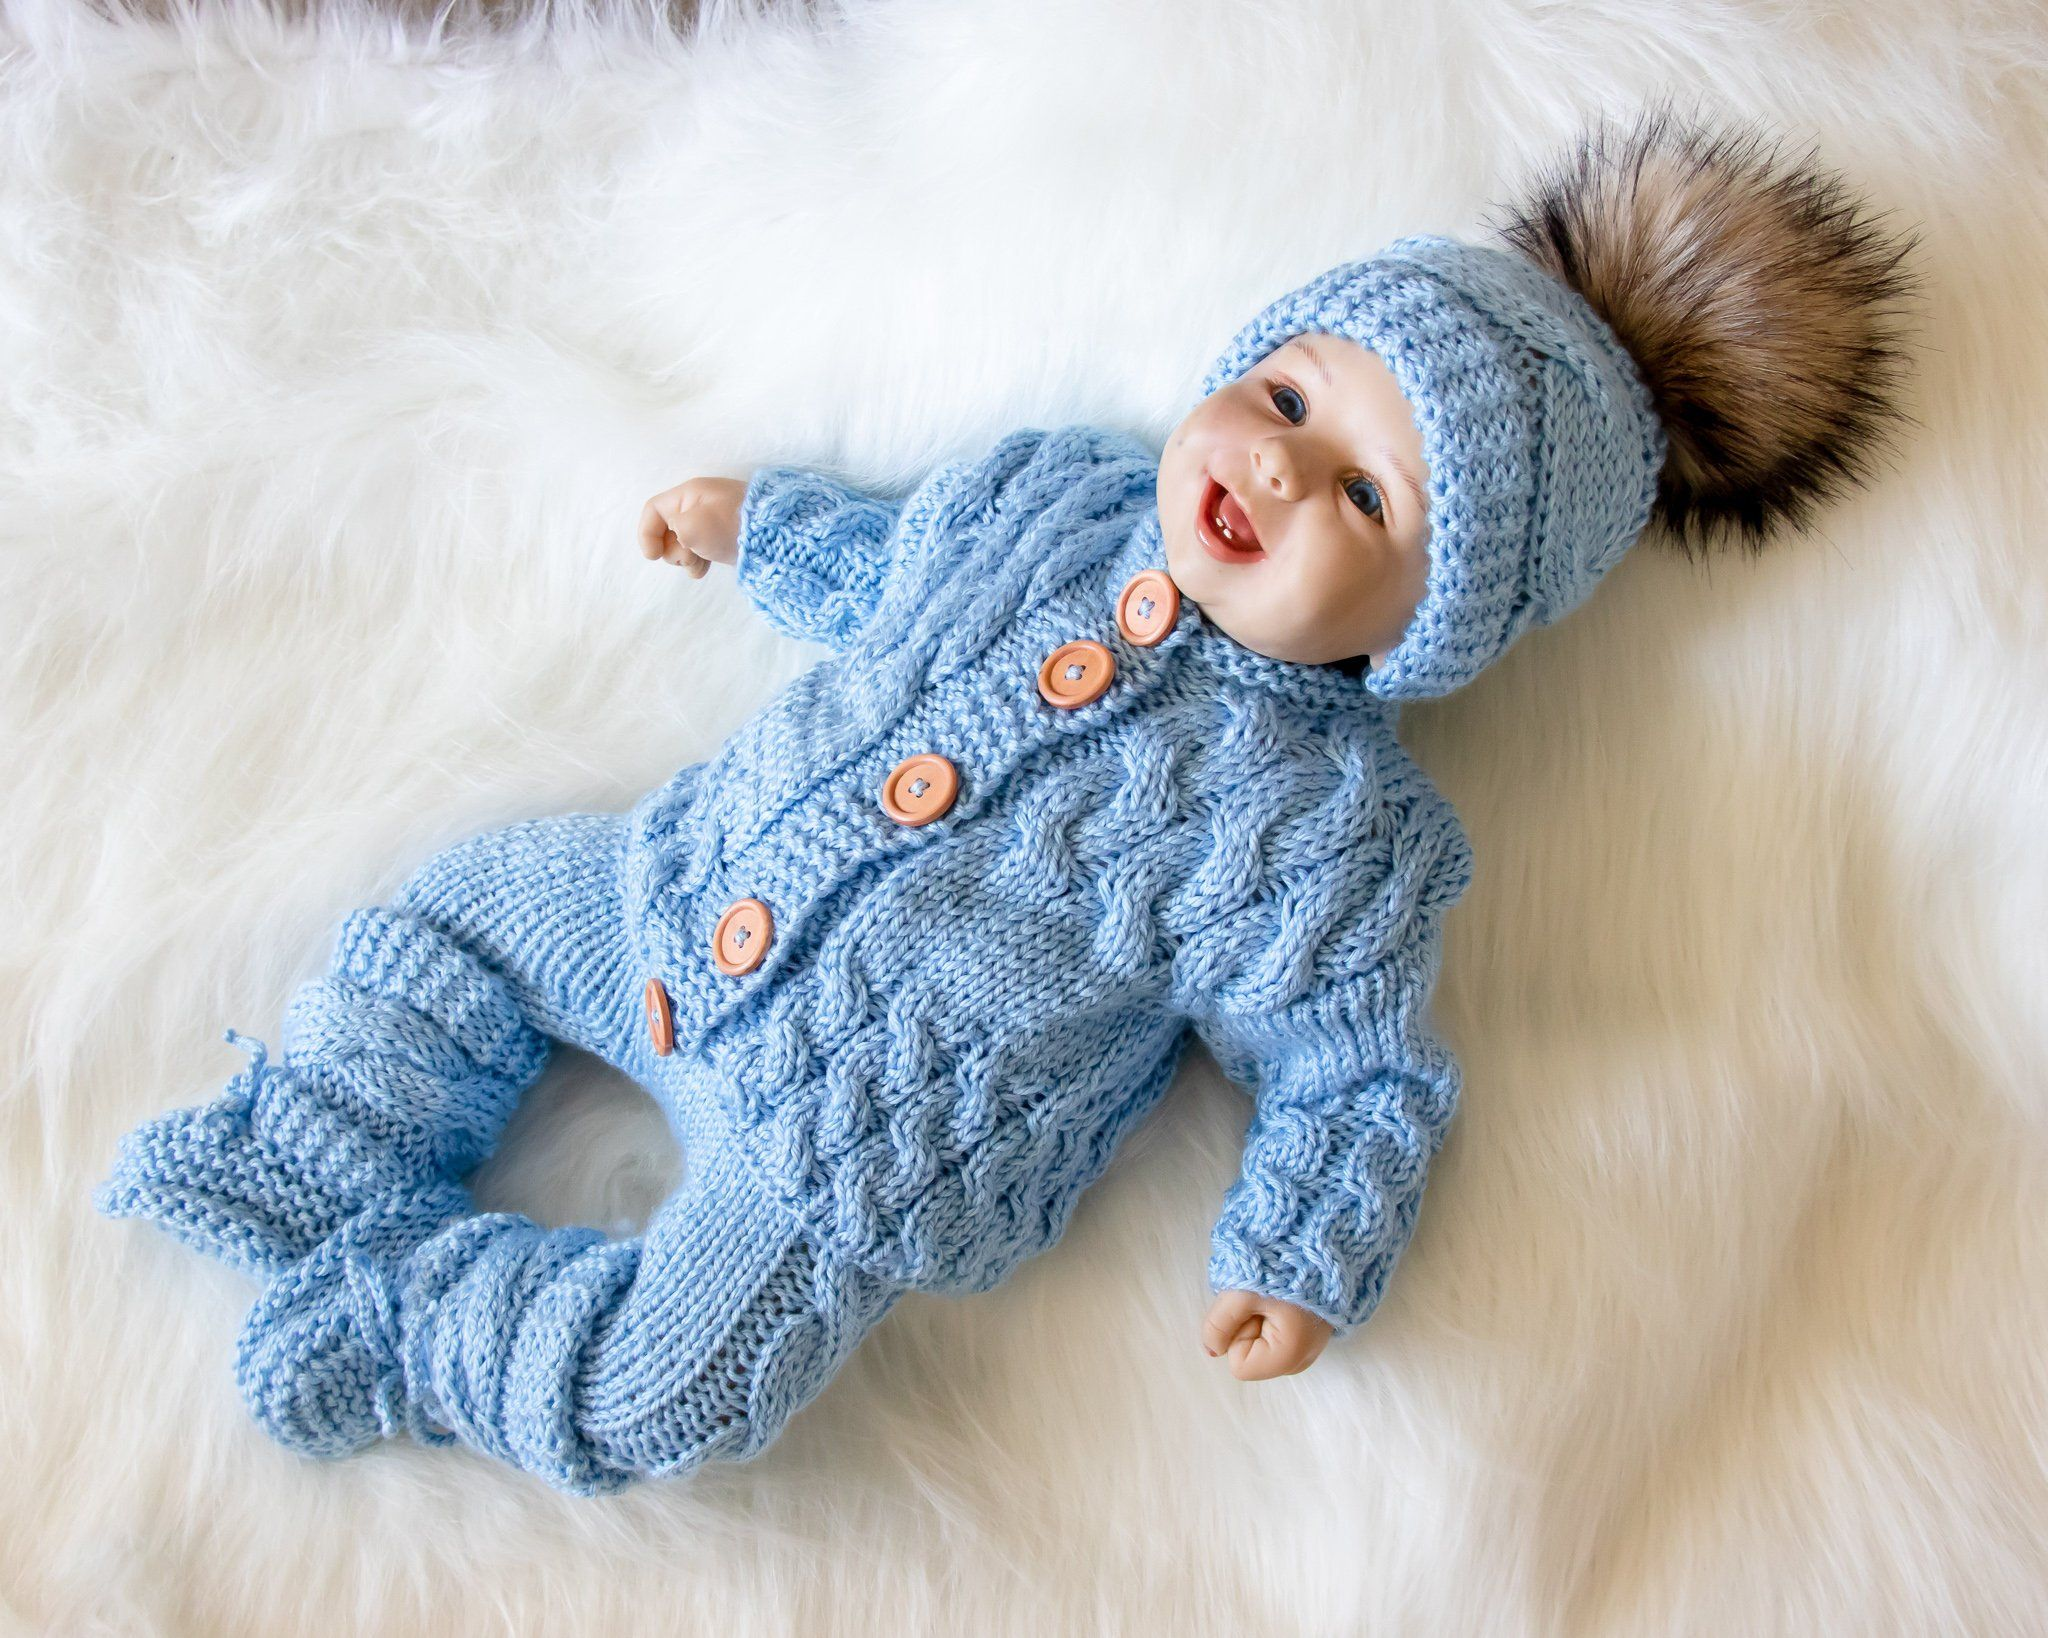 0 3 Months Baby Boy Coming Home Outfit Blue Outfit Hand Knit Etsy Newborn Boy Clothes Knitted Baby Clothes Baby Overalls